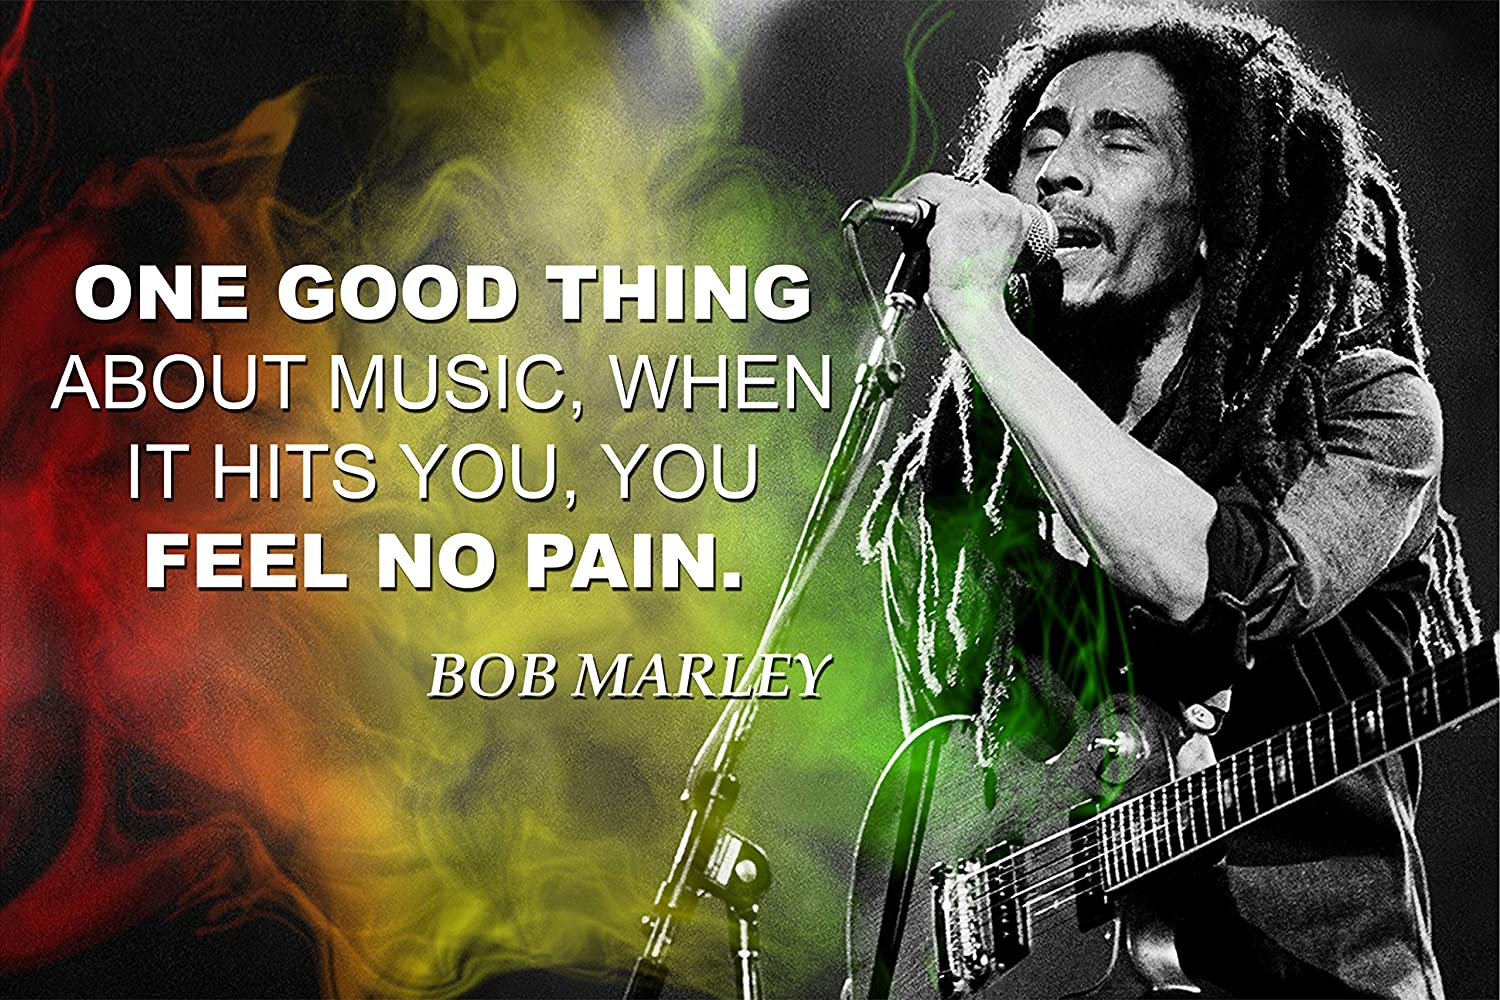 Bob Marley Quote Posters For Classroom Black History Month Poster Decorations School Classrooms Wall Art Decor Teaching Supplies Inspirational Motivational Teacher Educational Learning Mindsets P048